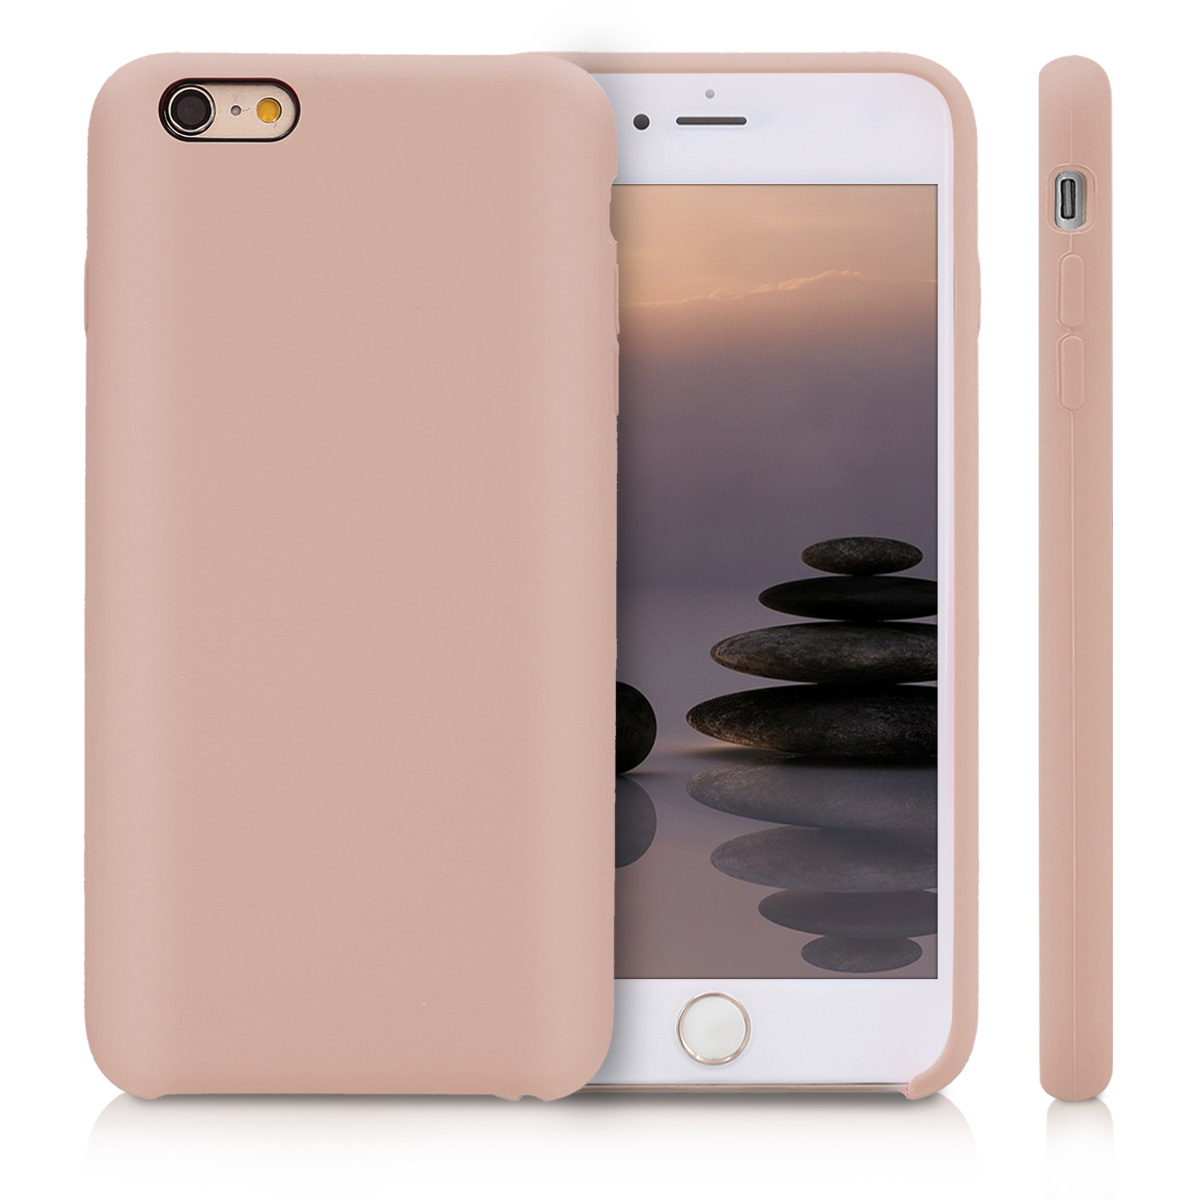 h lle f r apple iphone 6 plus 6s plus handyh lle handy case cover smartphone ebay. Black Bedroom Furniture Sets. Home Design Ideas